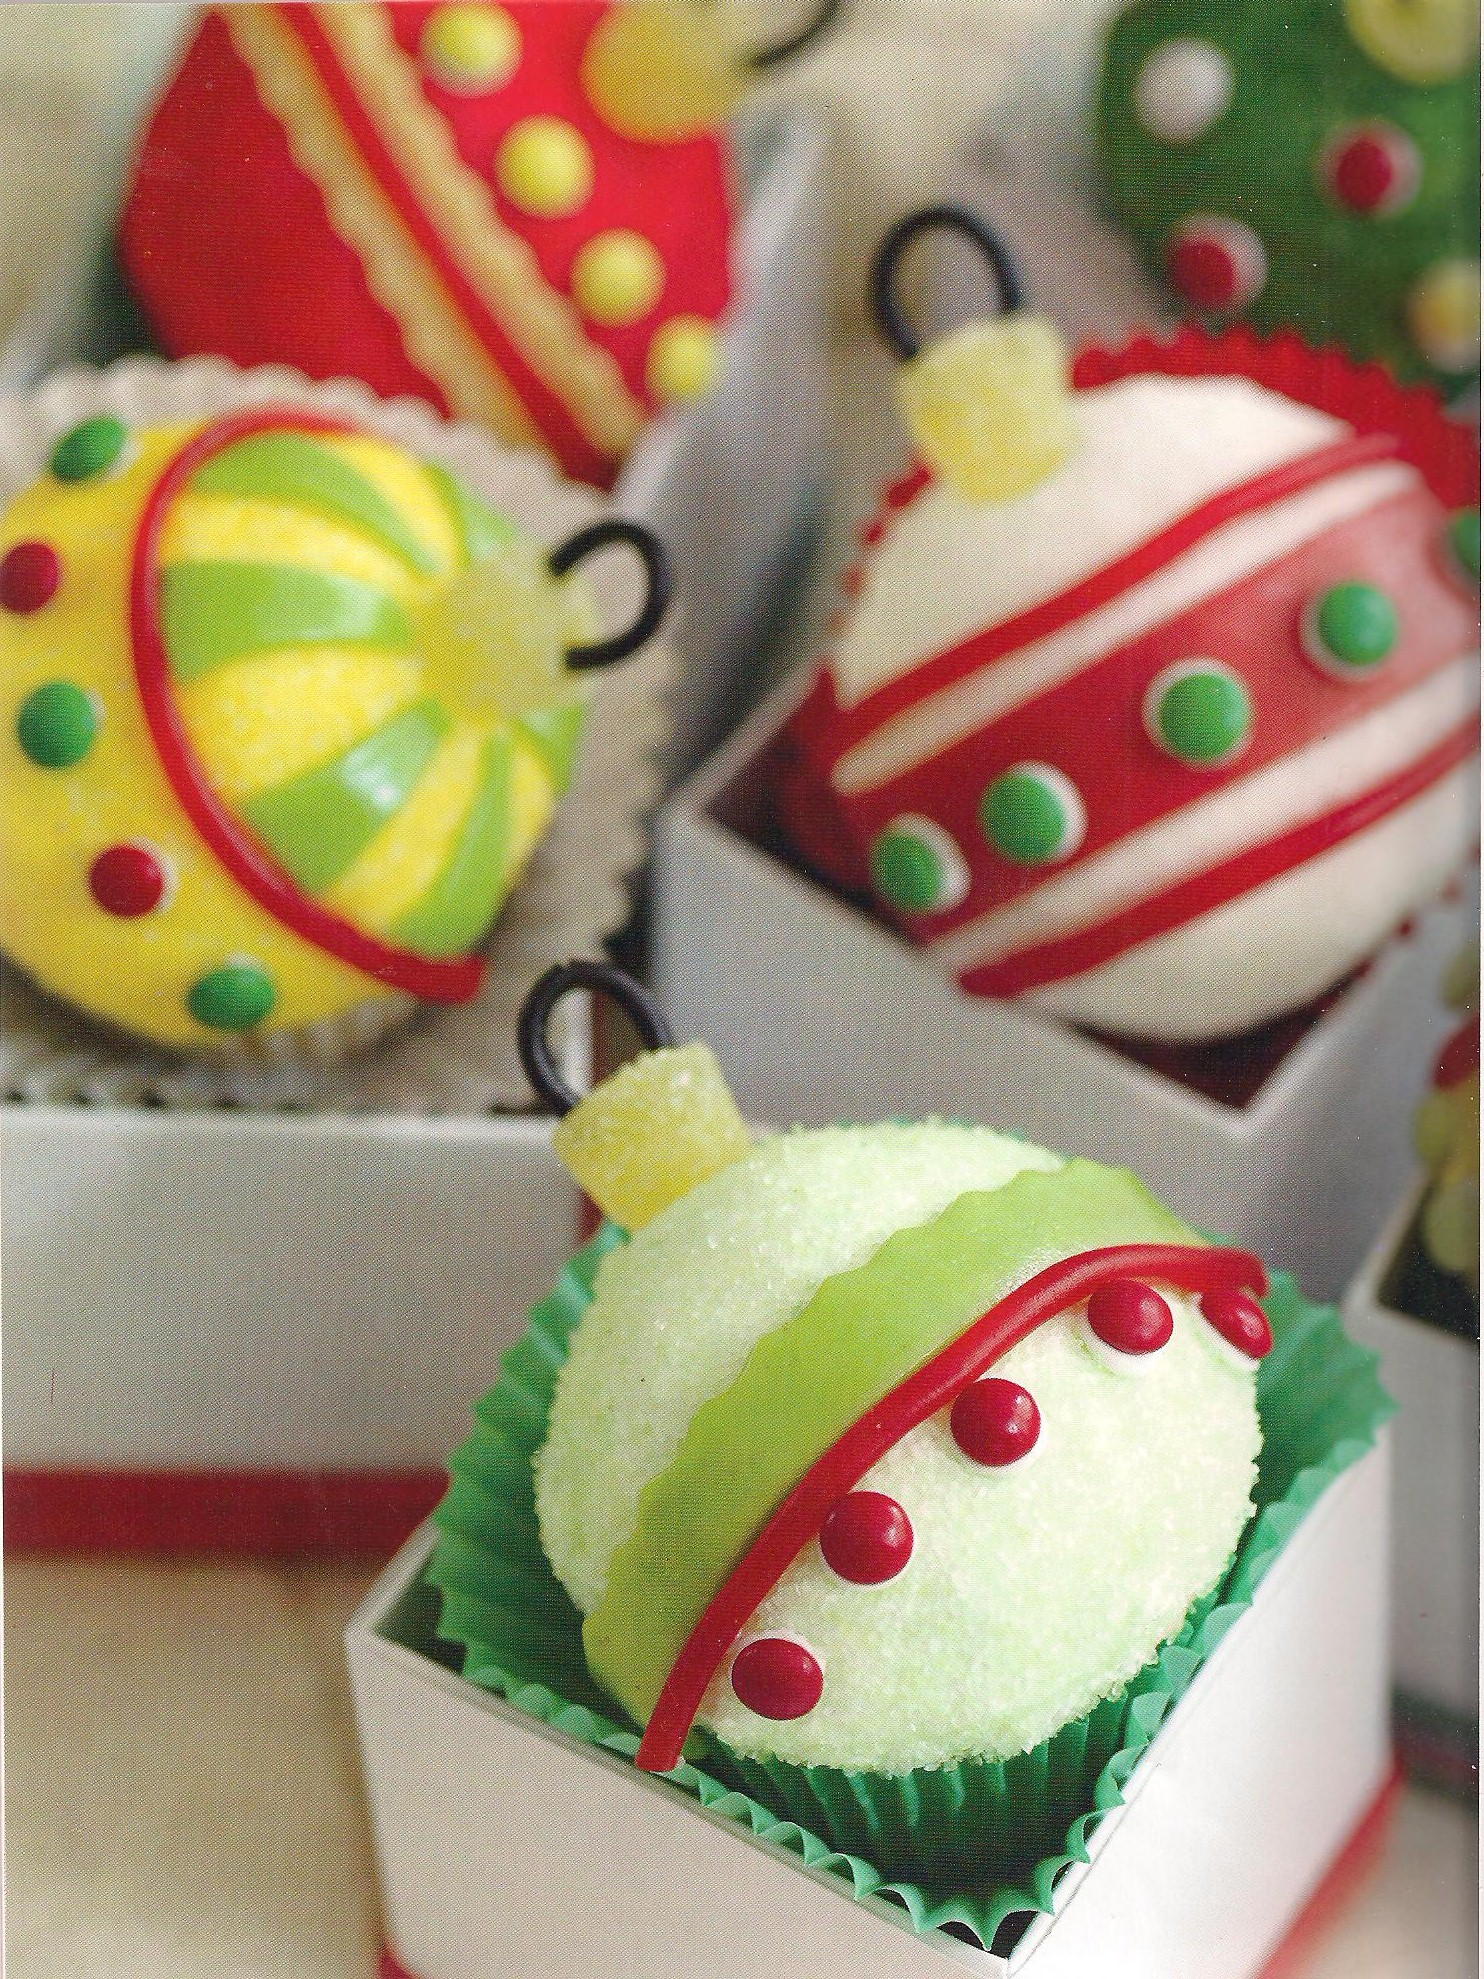 Christmas Cake Decoration Nuts : Top Christmas Cupcake Pictures - Best Collections Cake Recipe